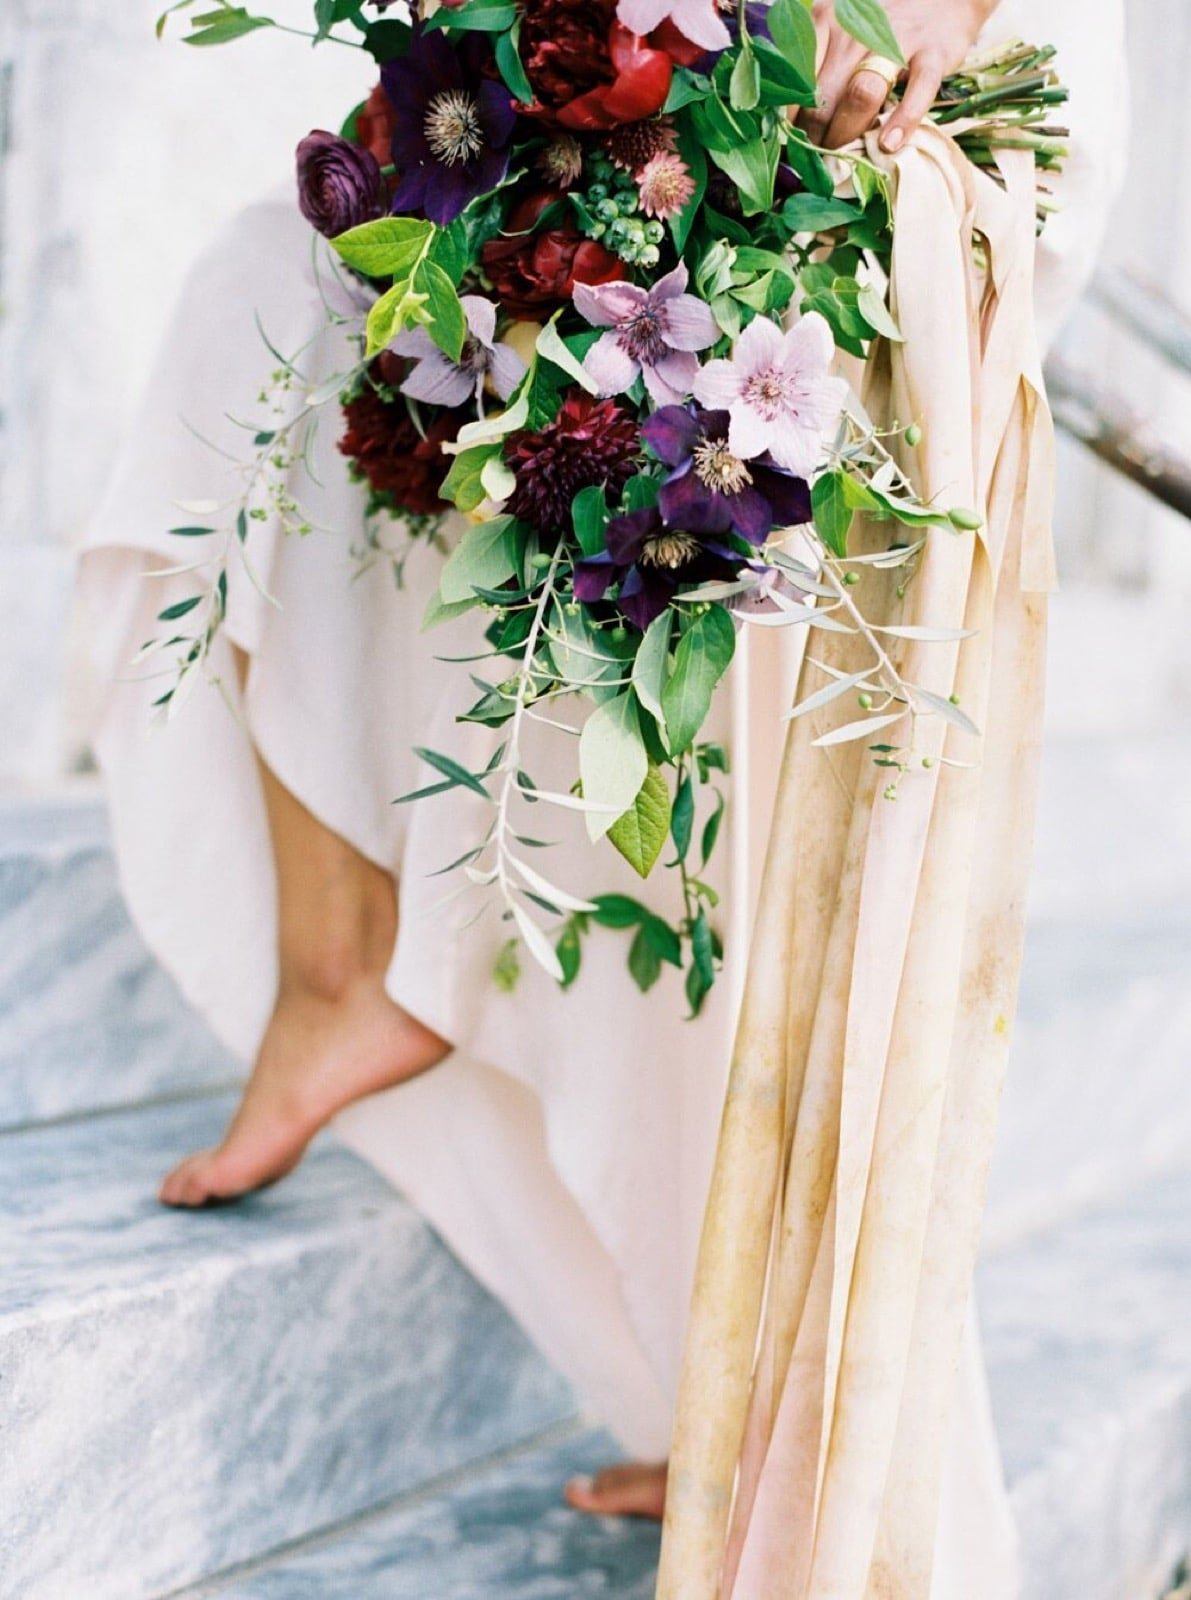 janna brown nashville florist and wedding designer-15